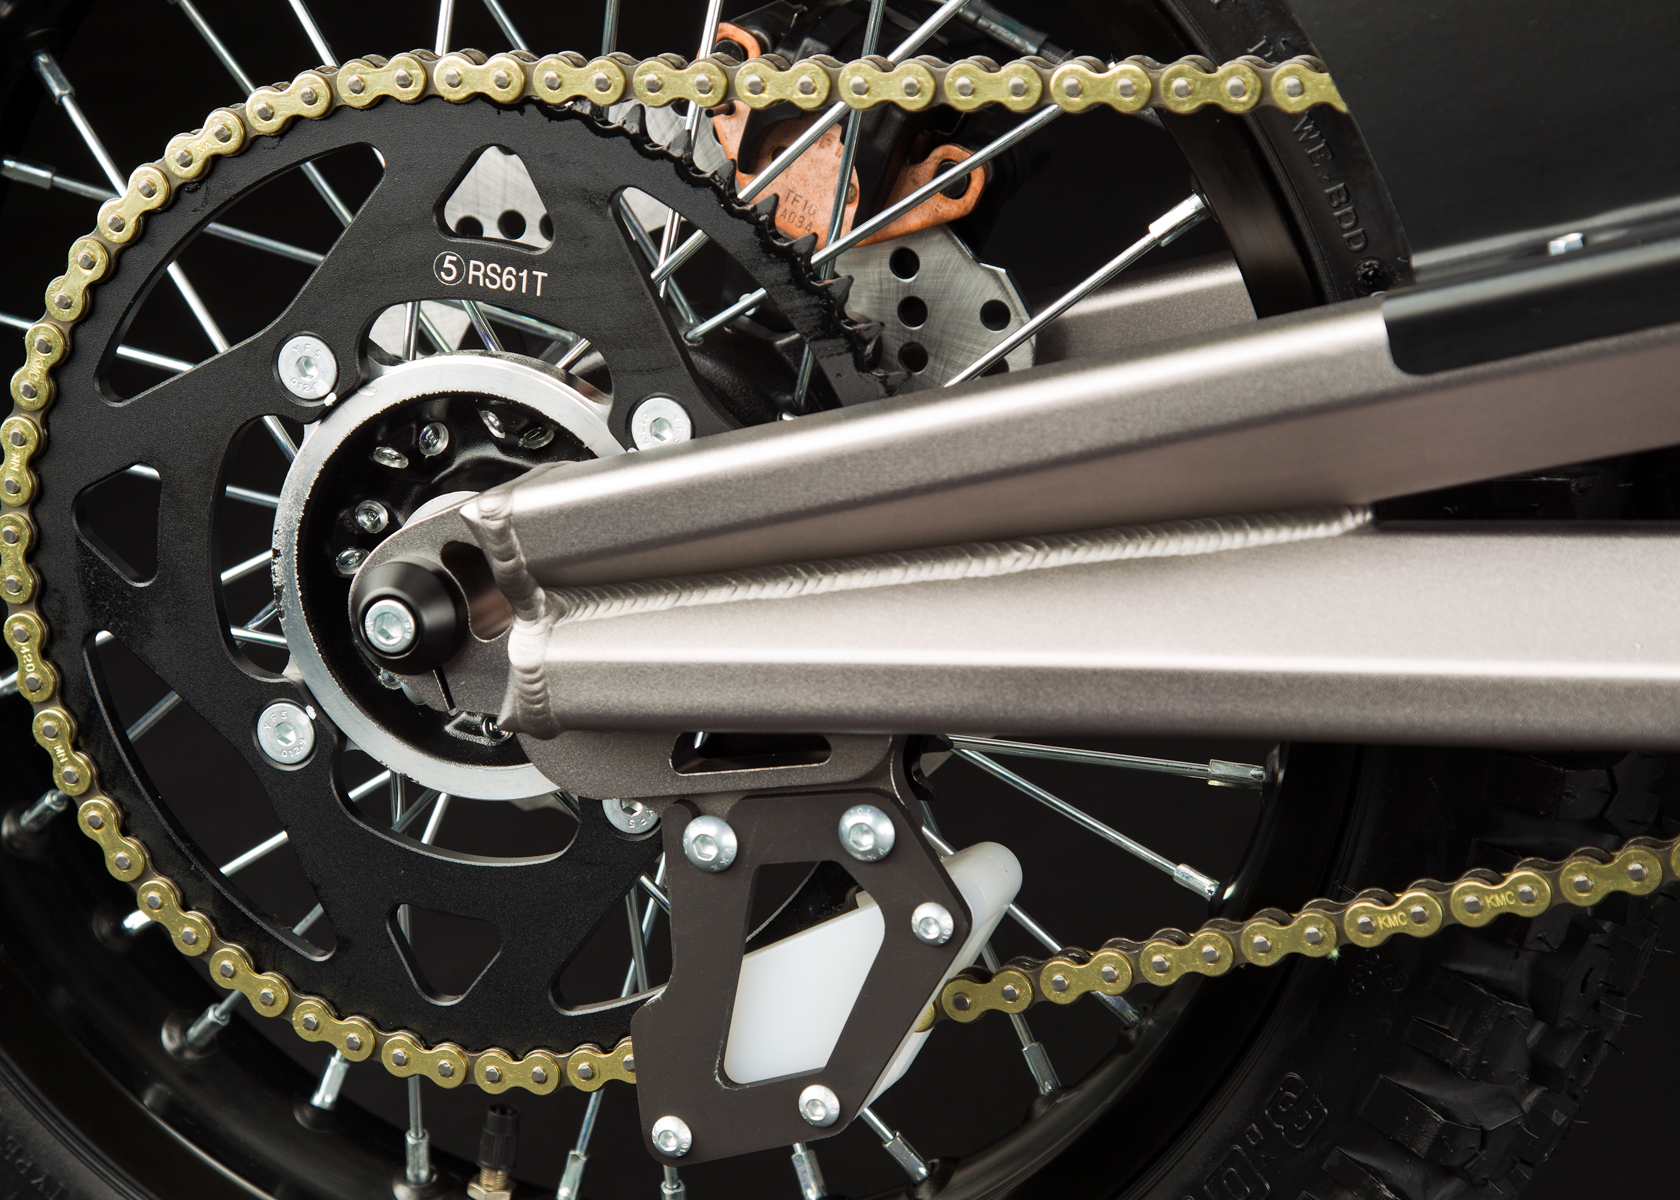 2012 Zero X Electric Motorcycle: Drivetrain / Chain / Sprocket